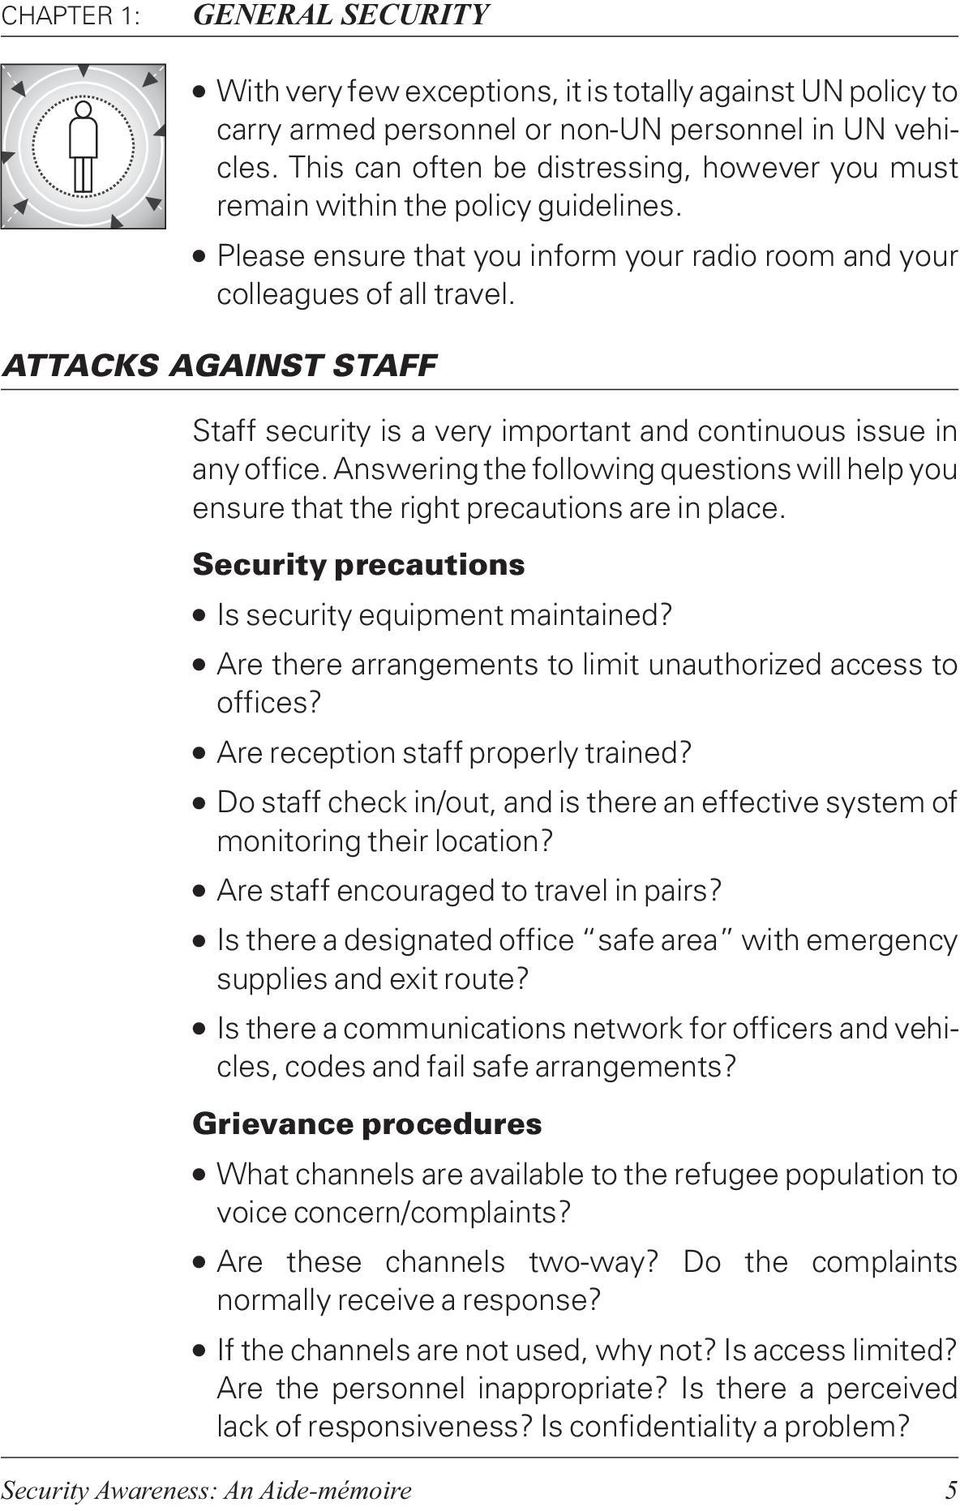 ATTACKS AGAINST STAFF Staff security is a very important and continuous issue in any office. Answering the following questions will help you ensure that the right precautions are in place.